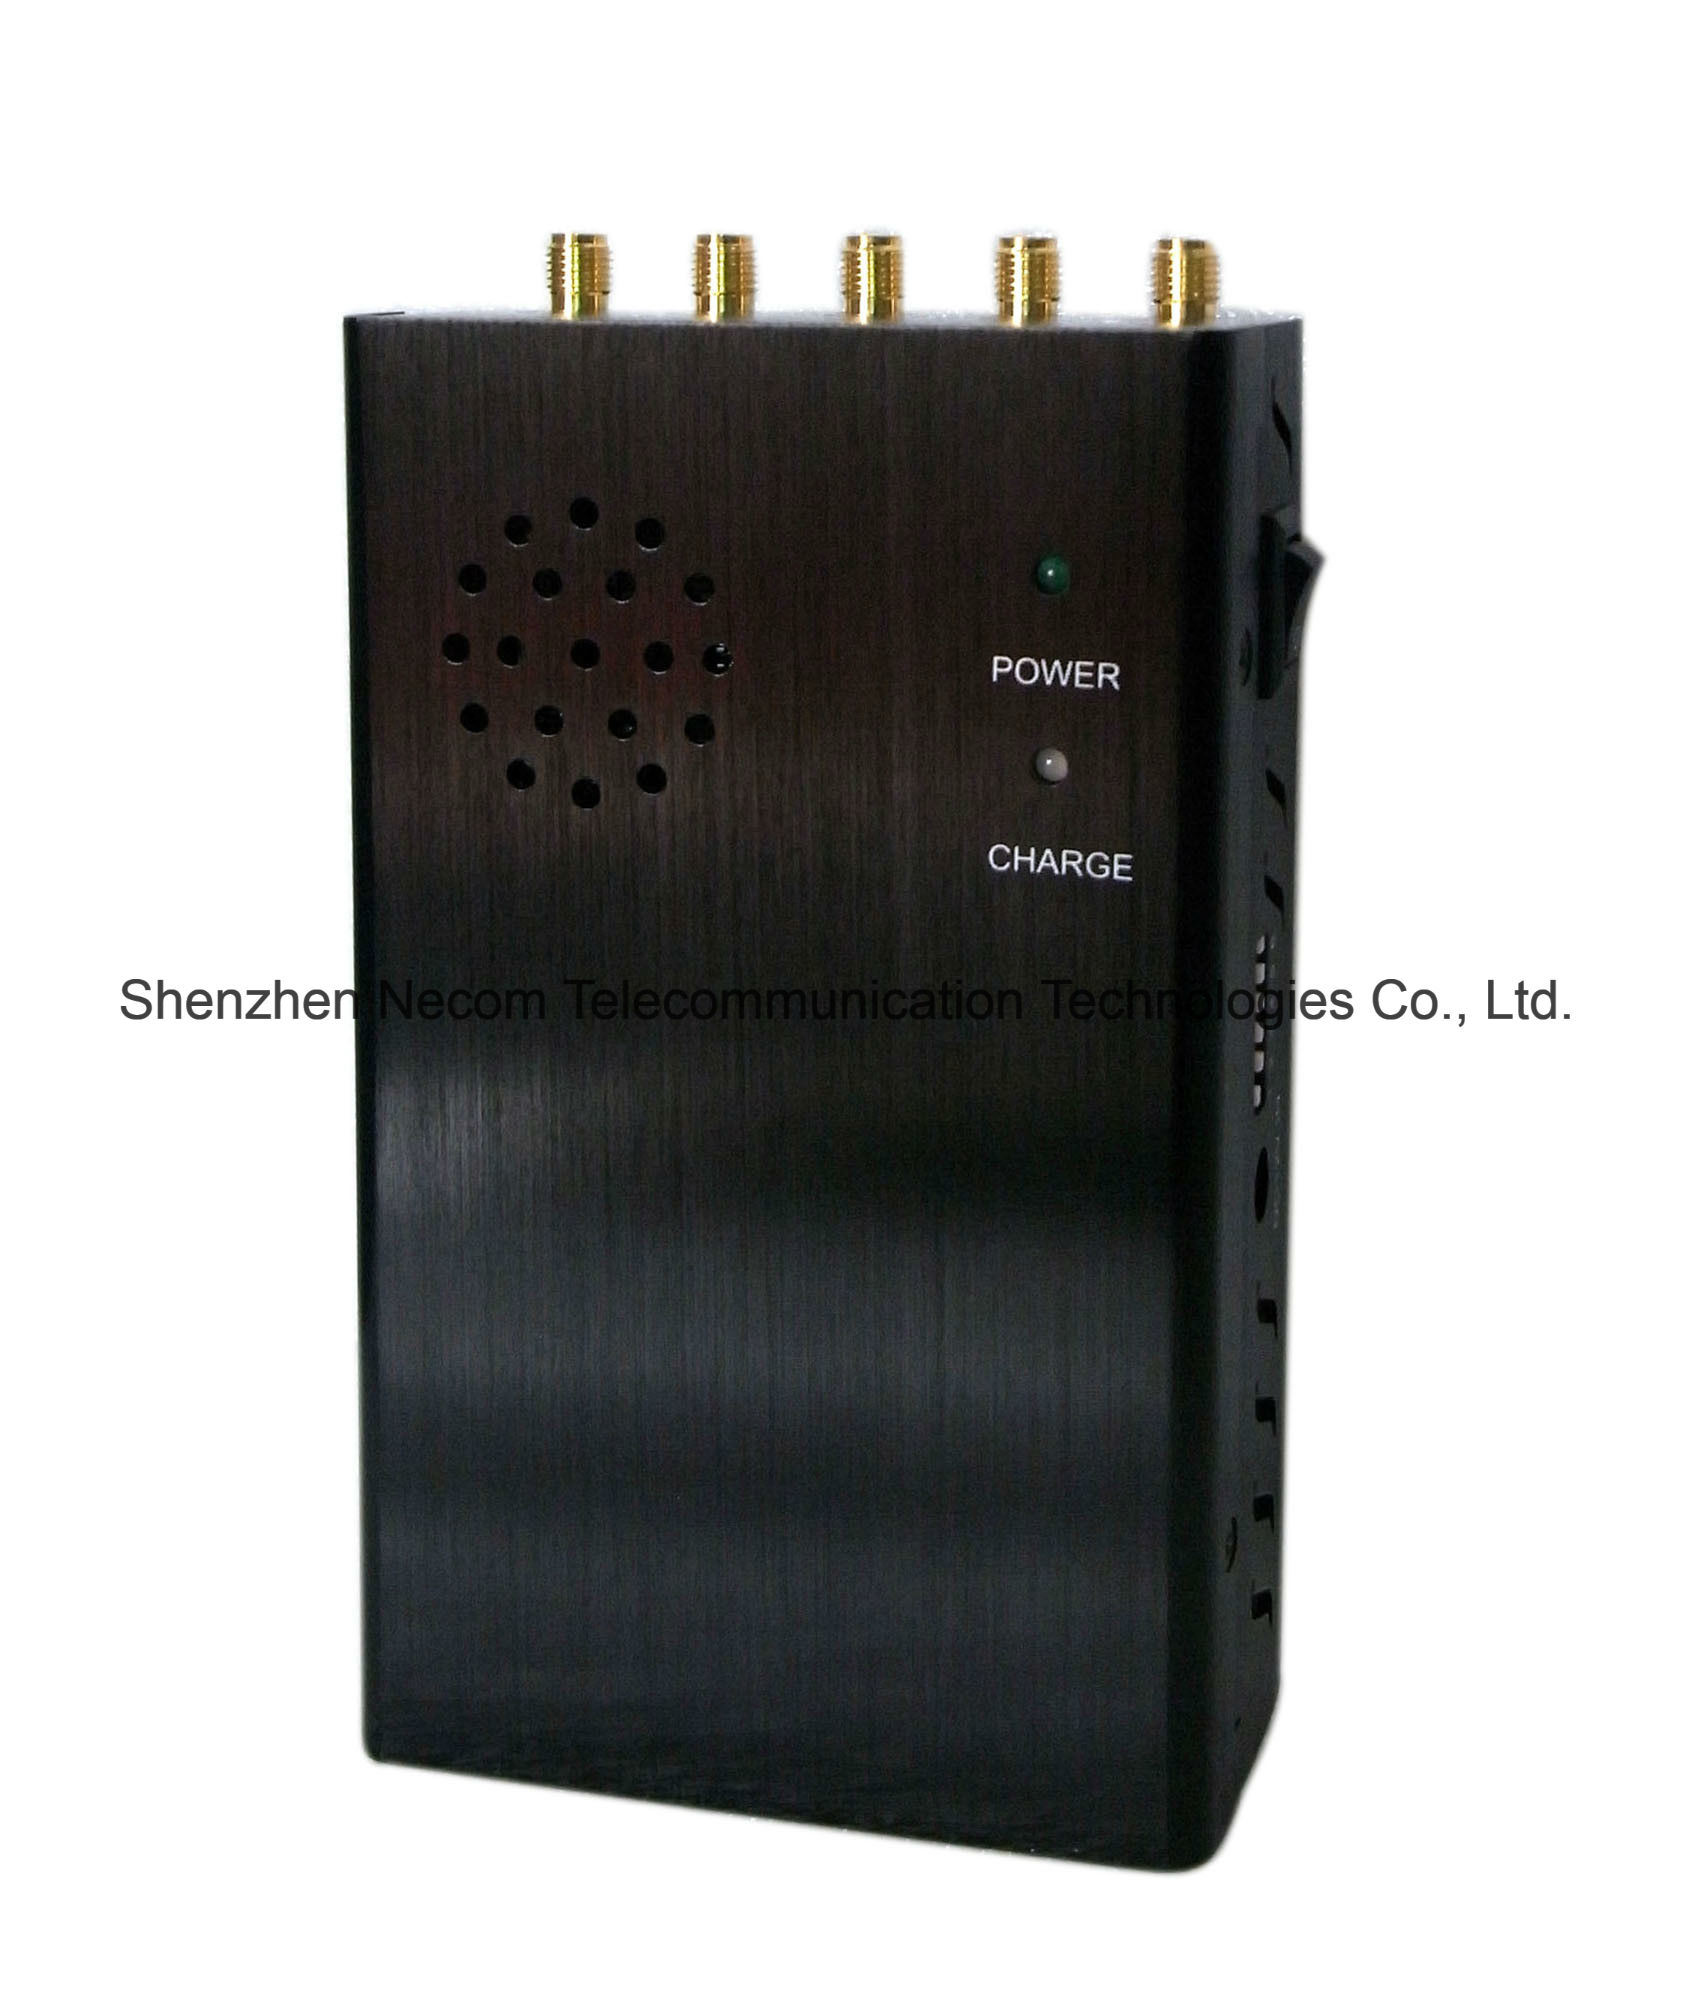 phone jammer florida area - China Wireless Signal Jammer with Good Quality&Favourable Price Jamming for Wired Camera, GPS Tracker, Mobile Phones, GSM Jammer/GPS Jammer /Cell Phone Jammer - China 5 Band Signal Blockers, Five Antennas Jammers